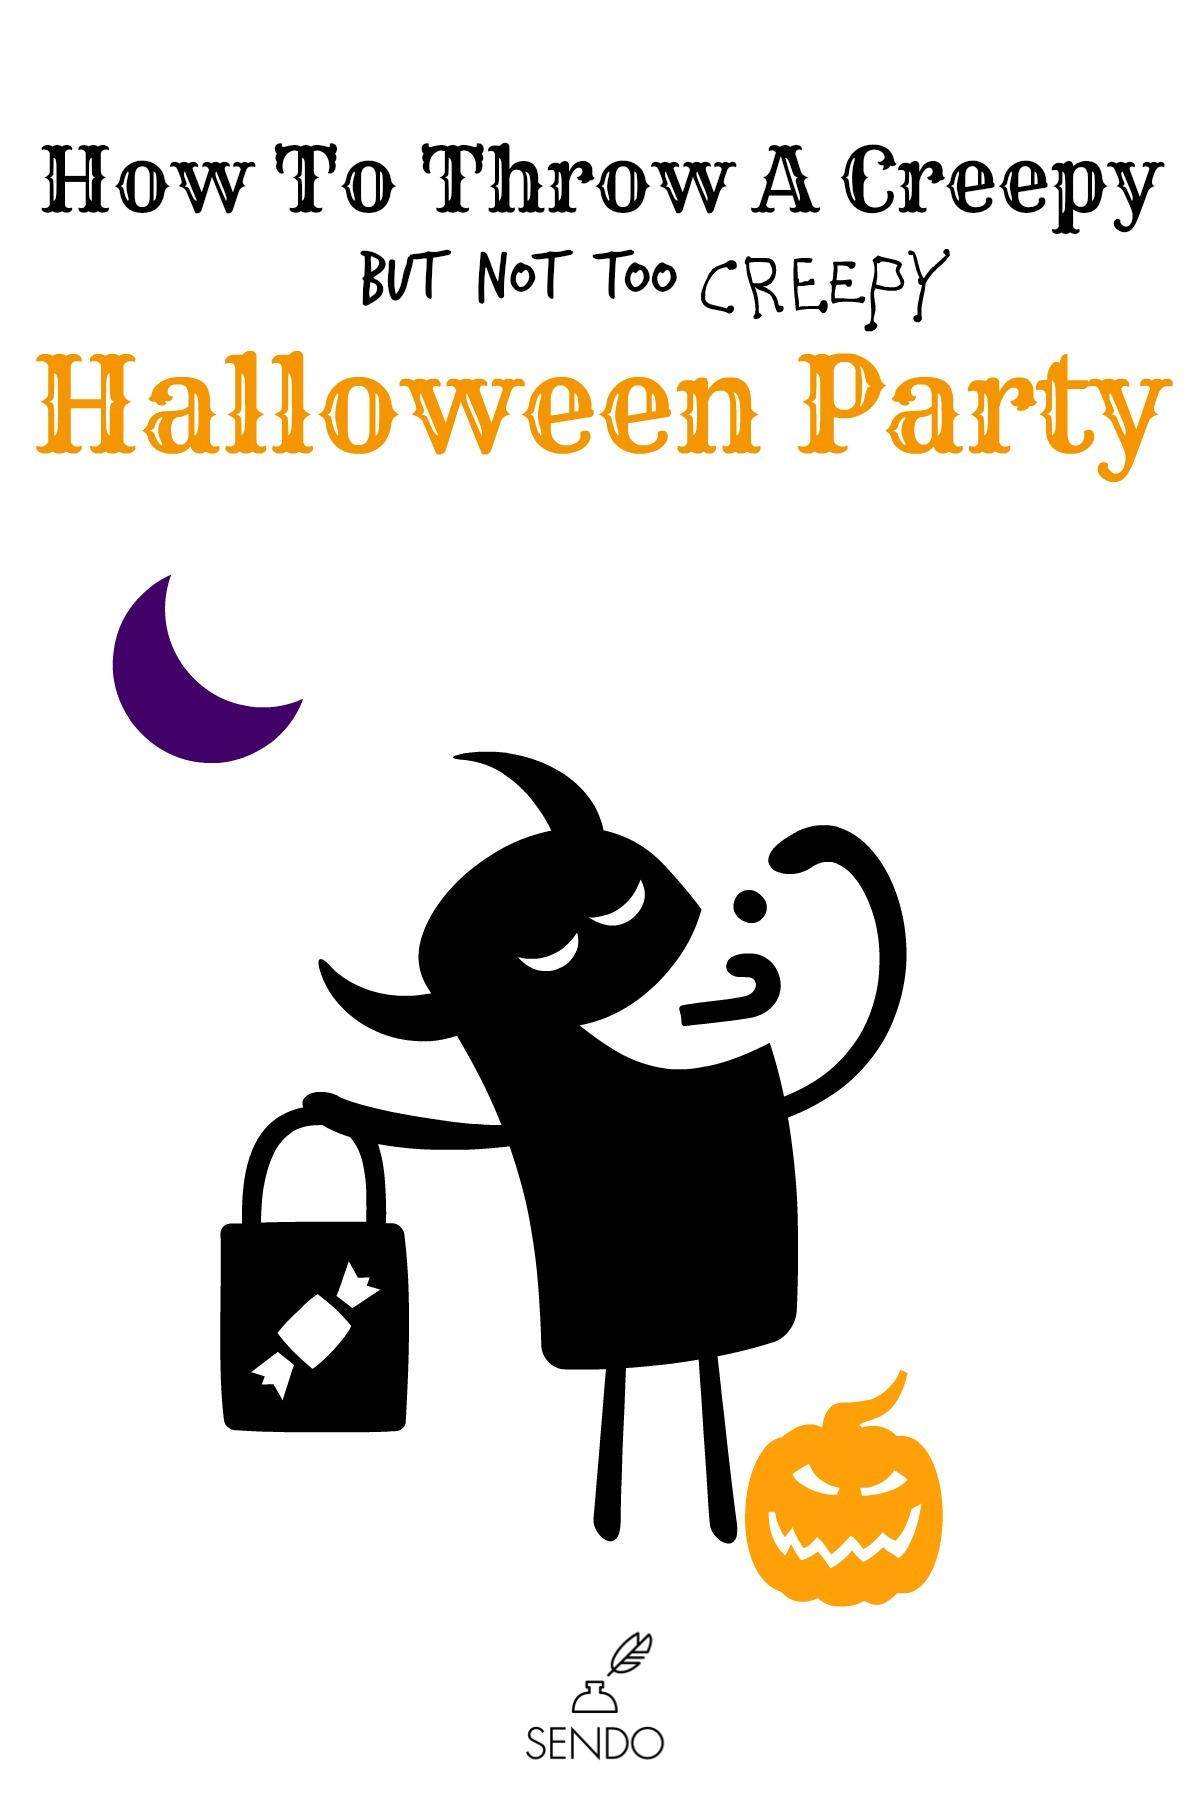 How To Throw a Creepy (but not too creepy) Halloween Party | Sendomatic Online Invitations